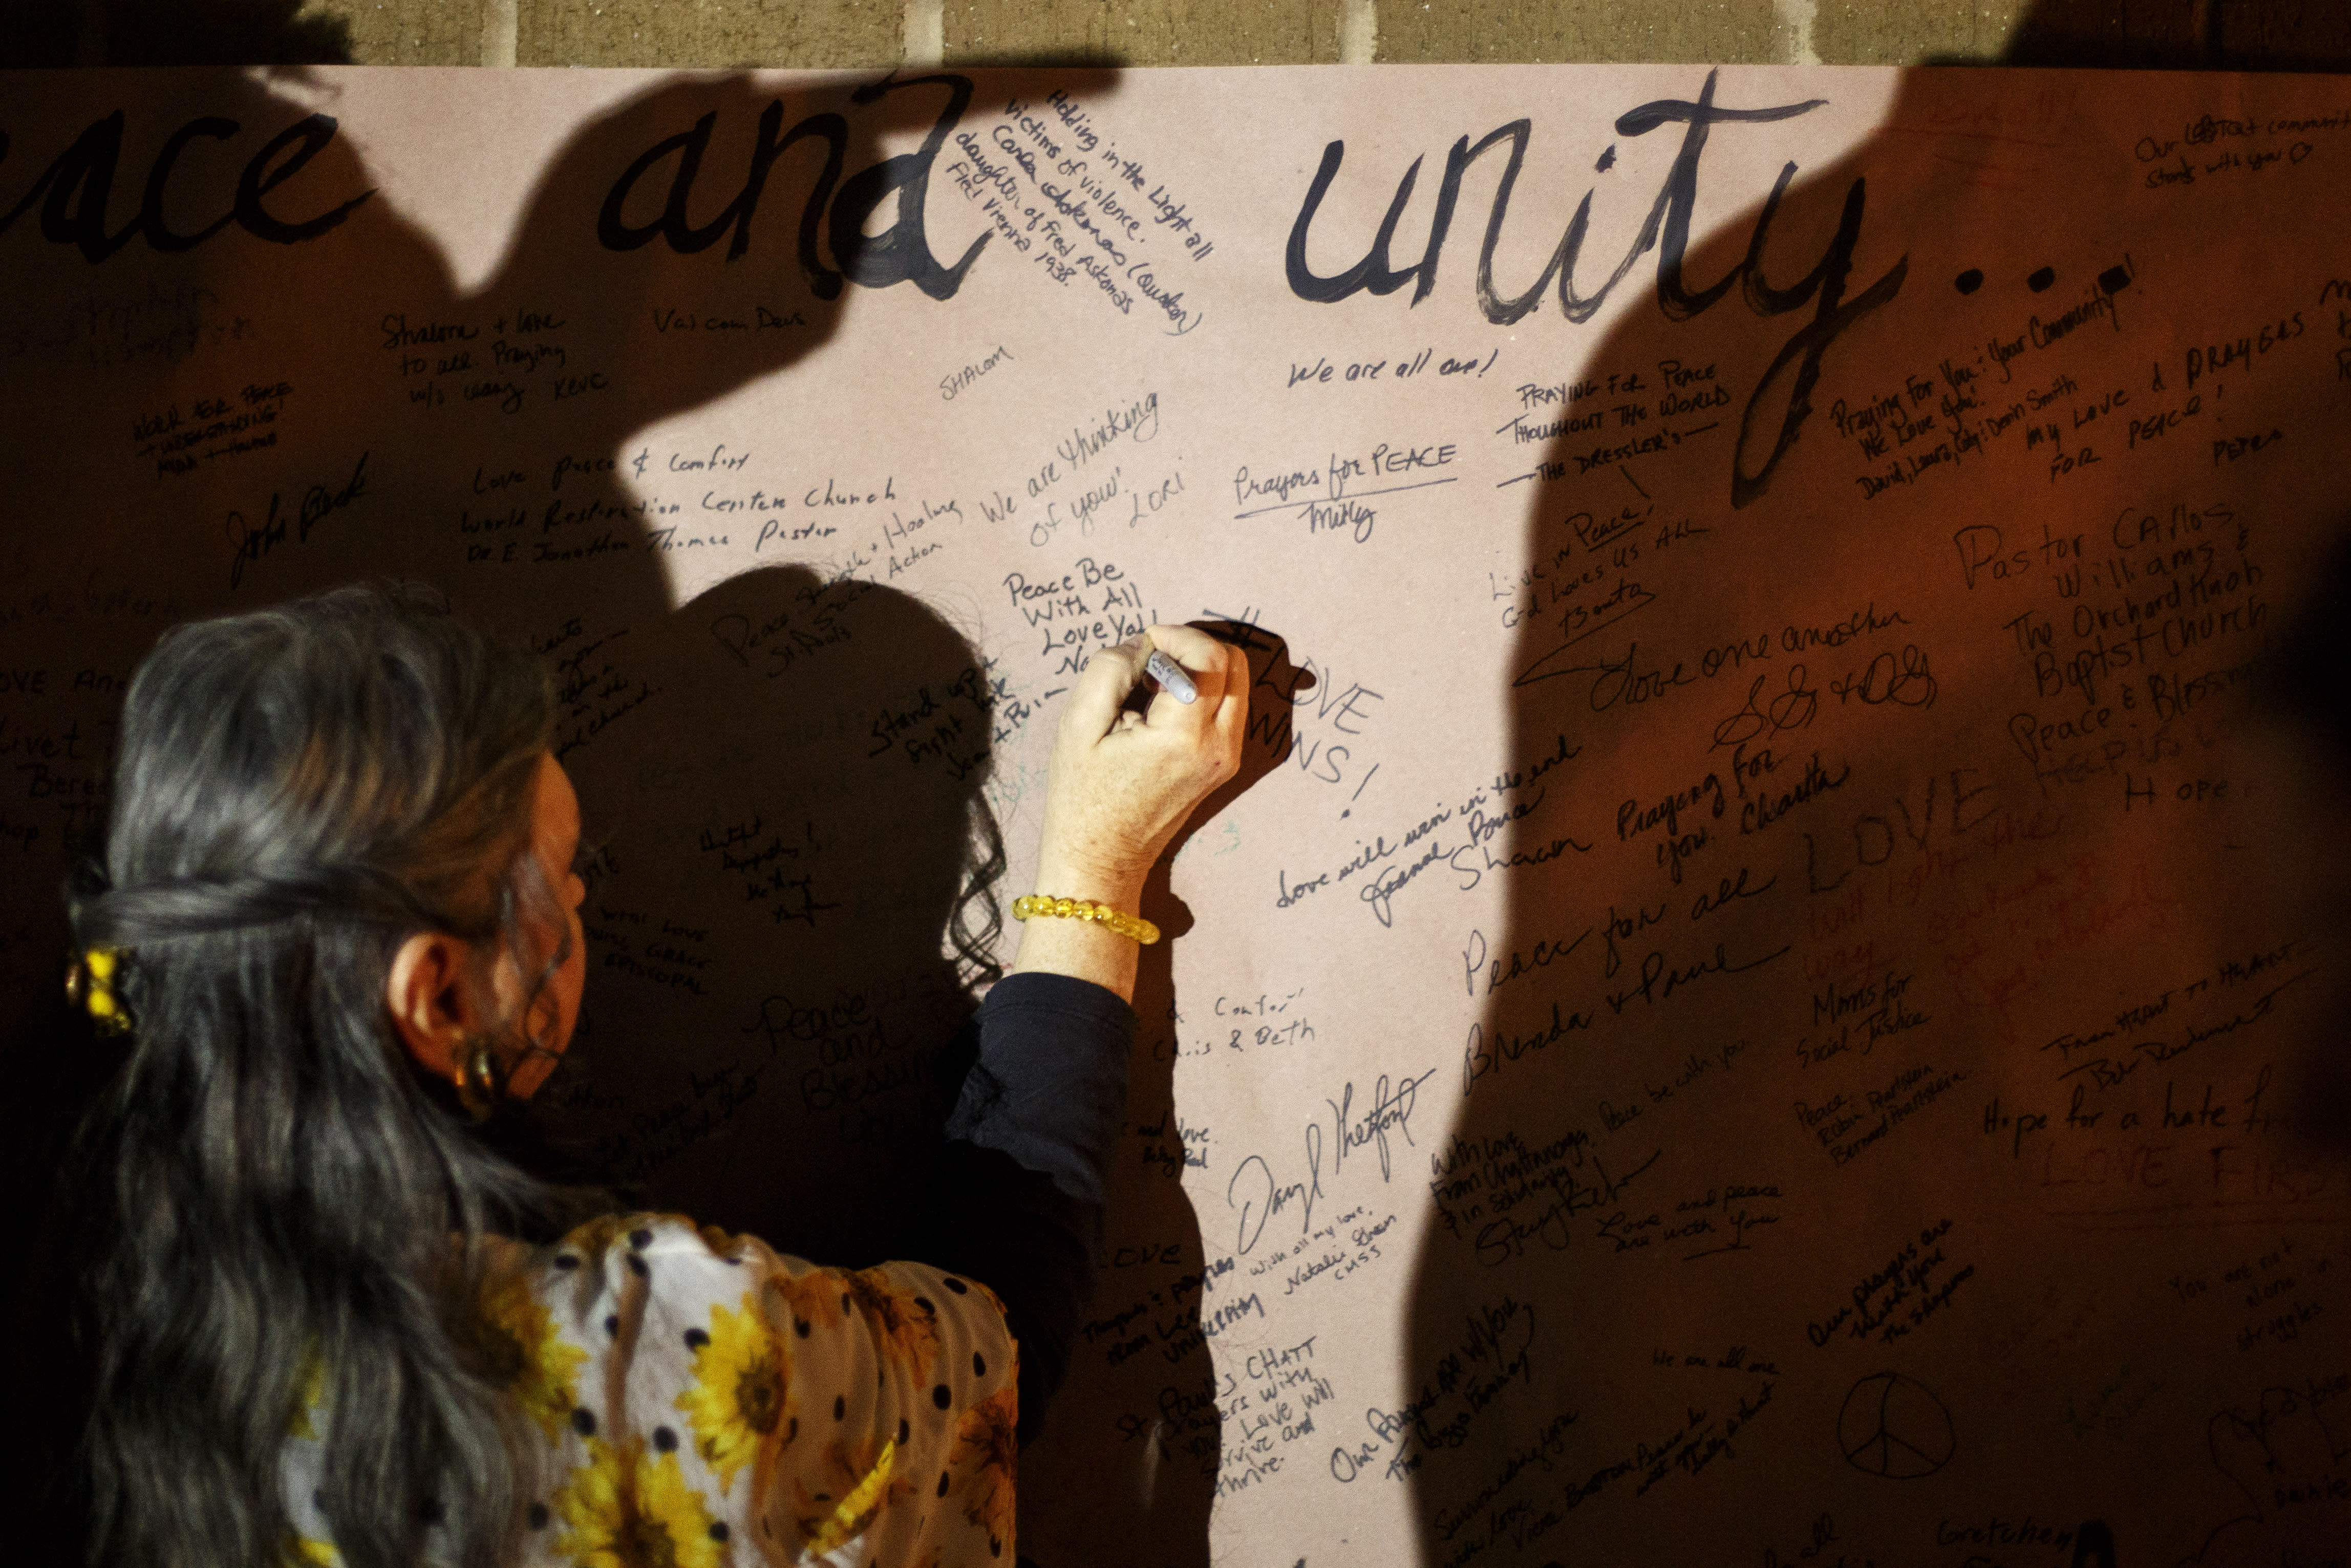 <p>Nada Joy Hyde writes a message of peace on a banner outside of the Jewish Cultural Center after a prayer vigil on Monday, Oct. 29, 2018 in Chattanooga, Tenn. The vigil was held for the victims of the shooting at the Tree of Life Synagogue in Pittsburgh. The vigil, open to all, included candle lighting, singing and words from various local faith leaders and Chattanooga Mayor Andy Berke. (Photo: C.B. Schmelter/Chattanooga Times Free Press via AP) </p>